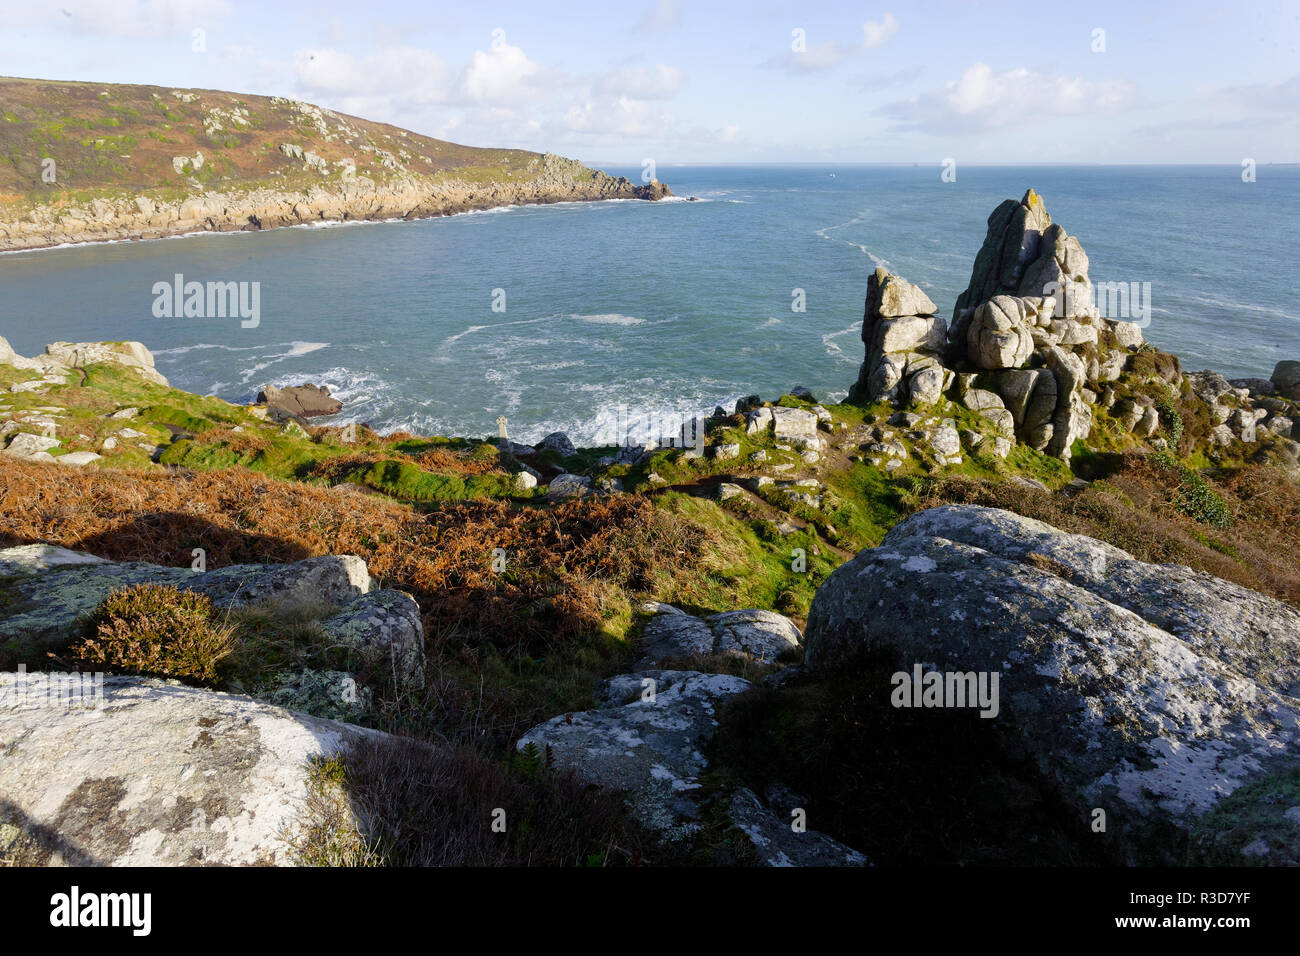 Porthcurno beach view empty with blue sky, Cornwall, UK. - Stock Image